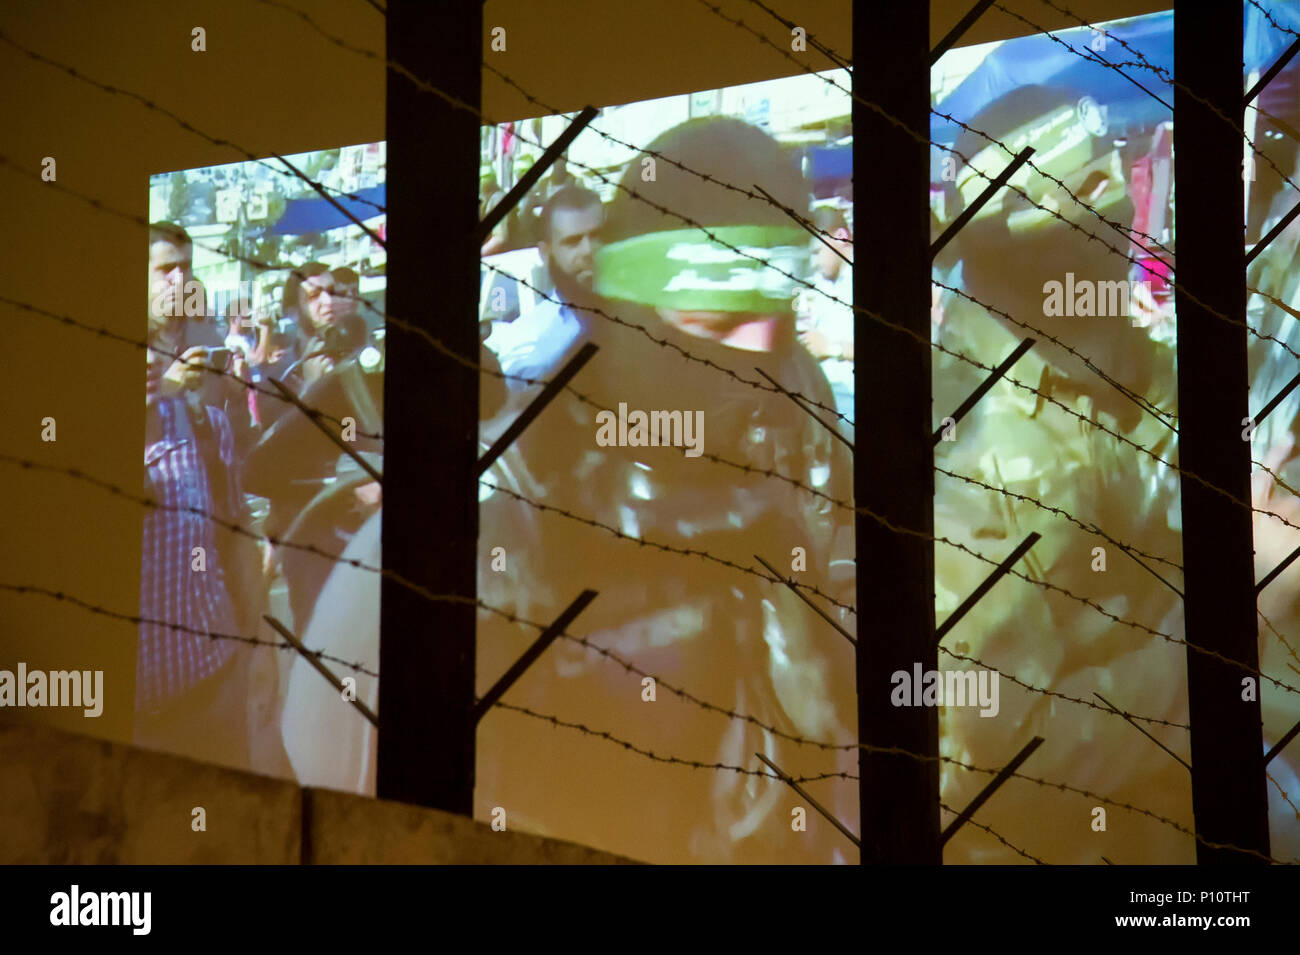 Global War of Terror film as a part of exhibion in Museum of the Second World War in Gdansk, Poland. January 23rd 2017 © Wojciech Strozyk / Alamy Stoc - Stock Image